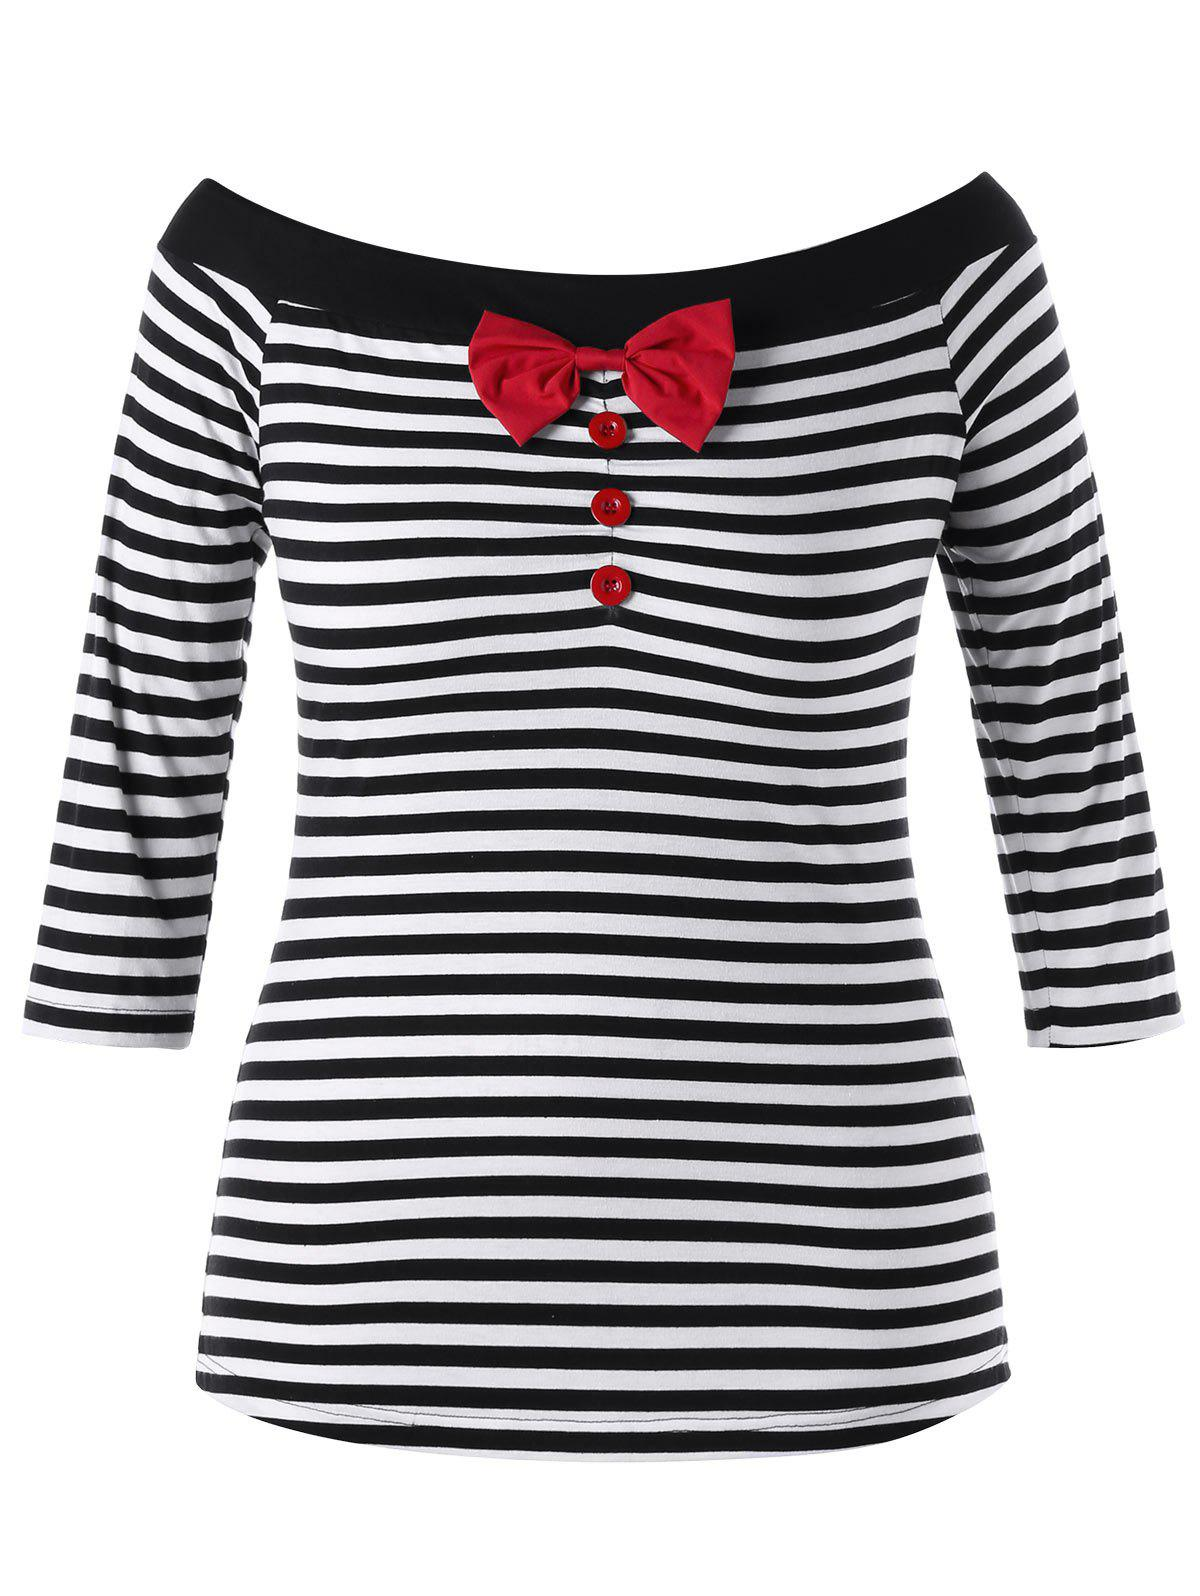 Plus Size Bowknot Embellished Striped Top plus size bowknot embellished tunic top